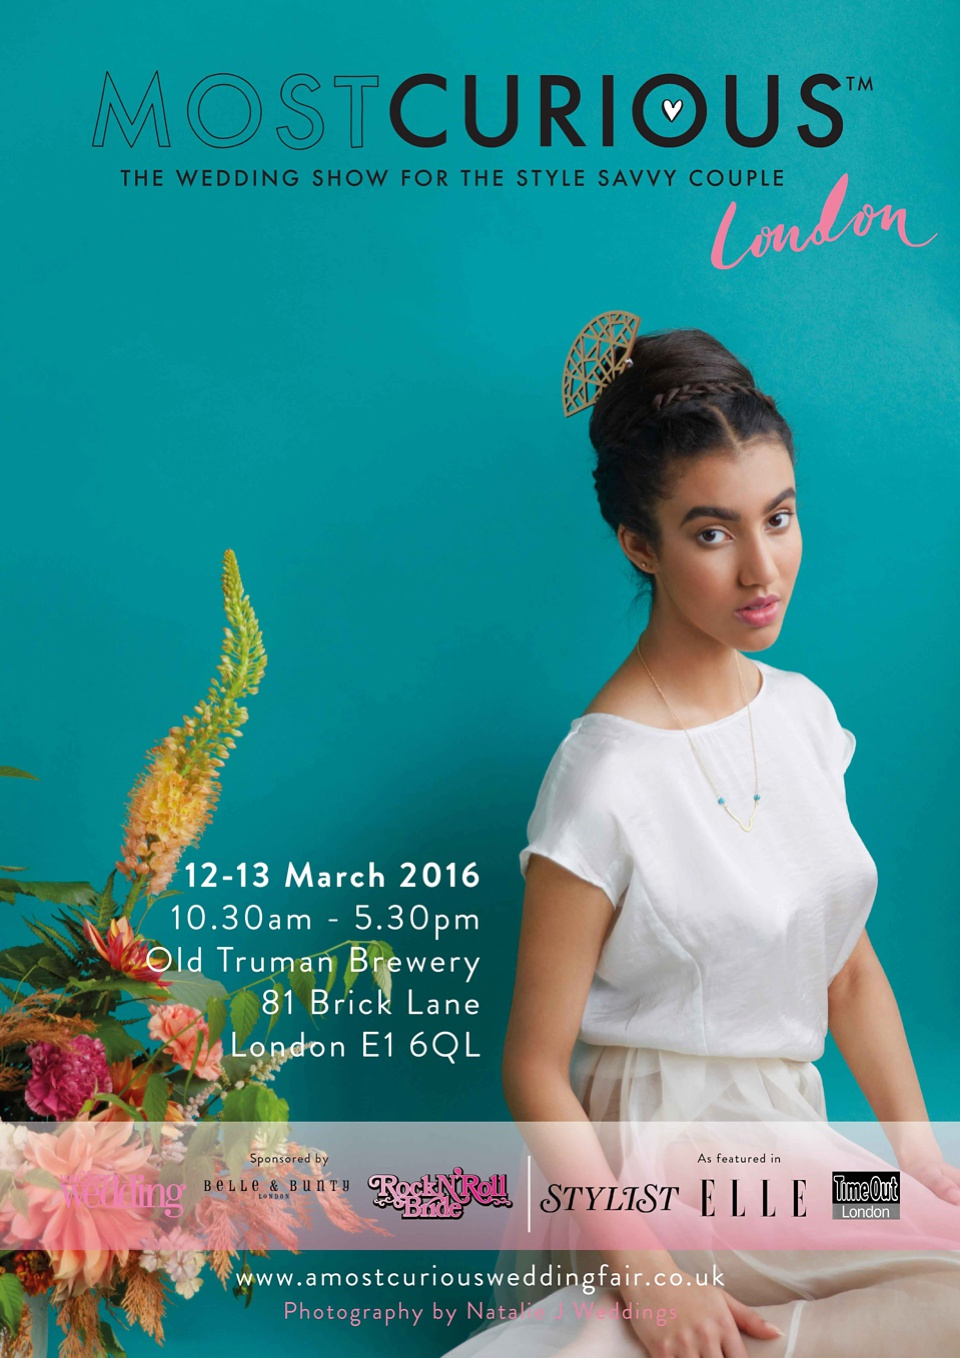 Most Curious – A Wedding Show For The Style Savvy Couple, 12-13 March 2016, London